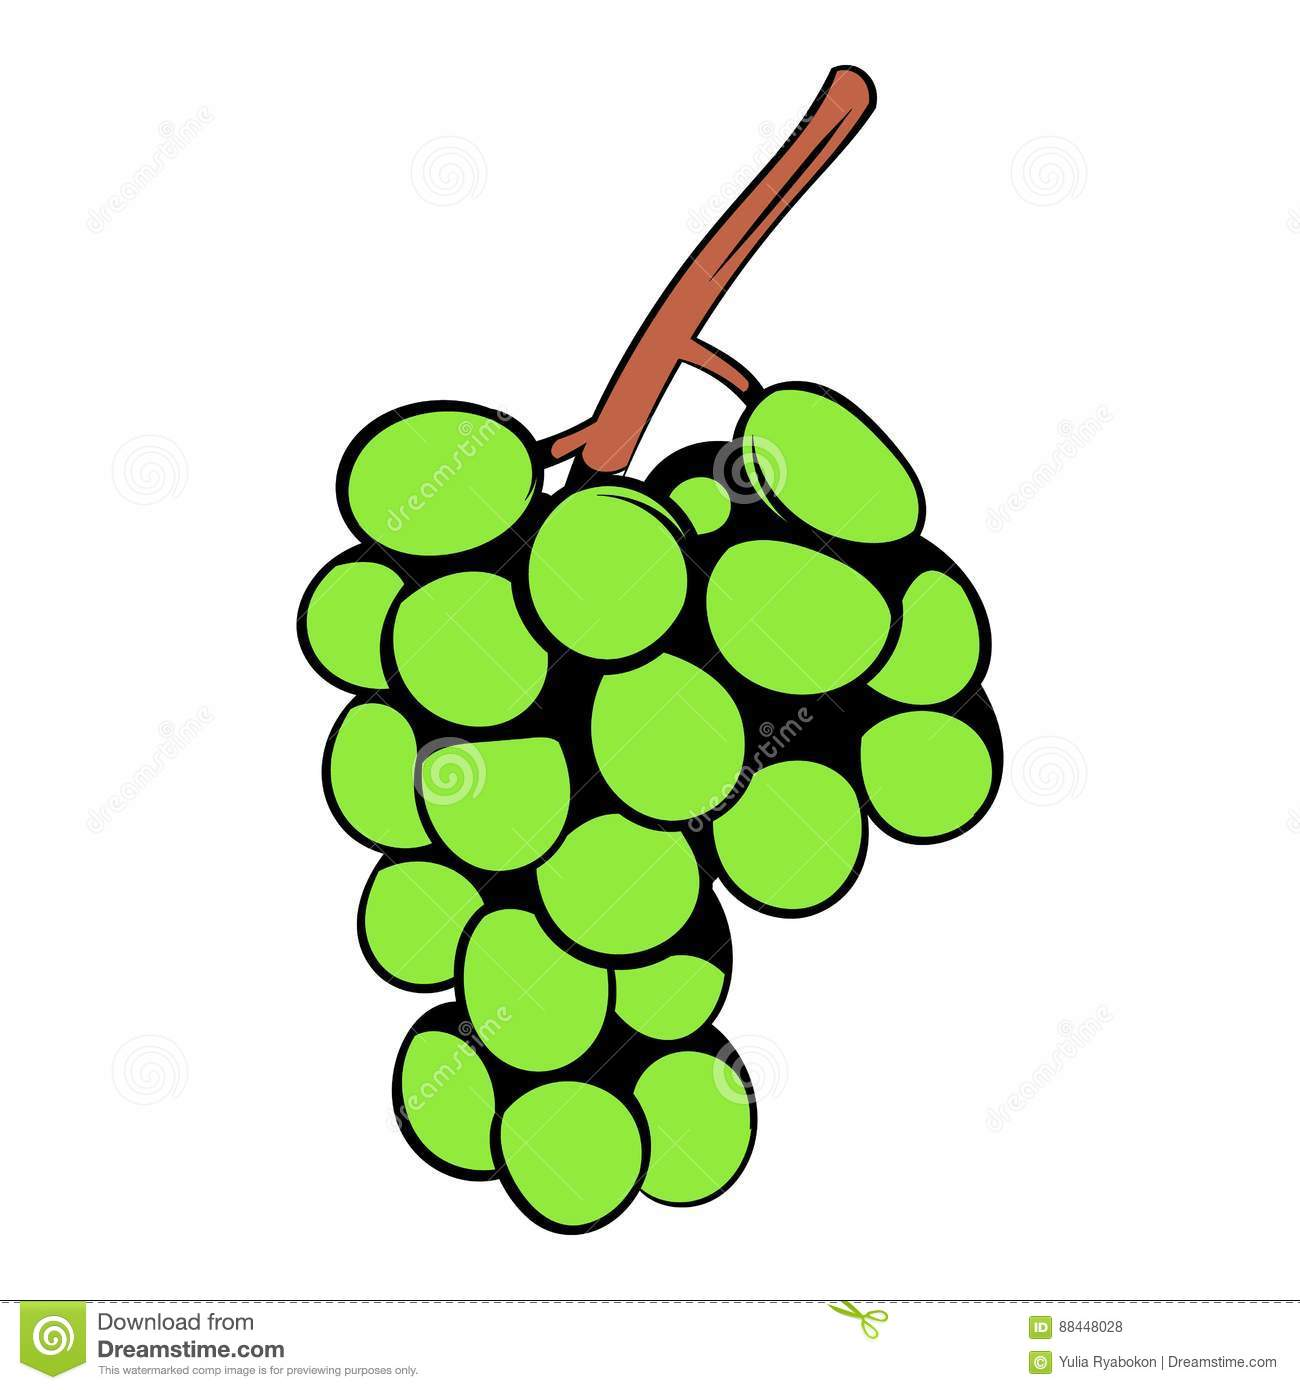 Green Grape Branch Icon Cartoon Stock Vector - Image: 88448028